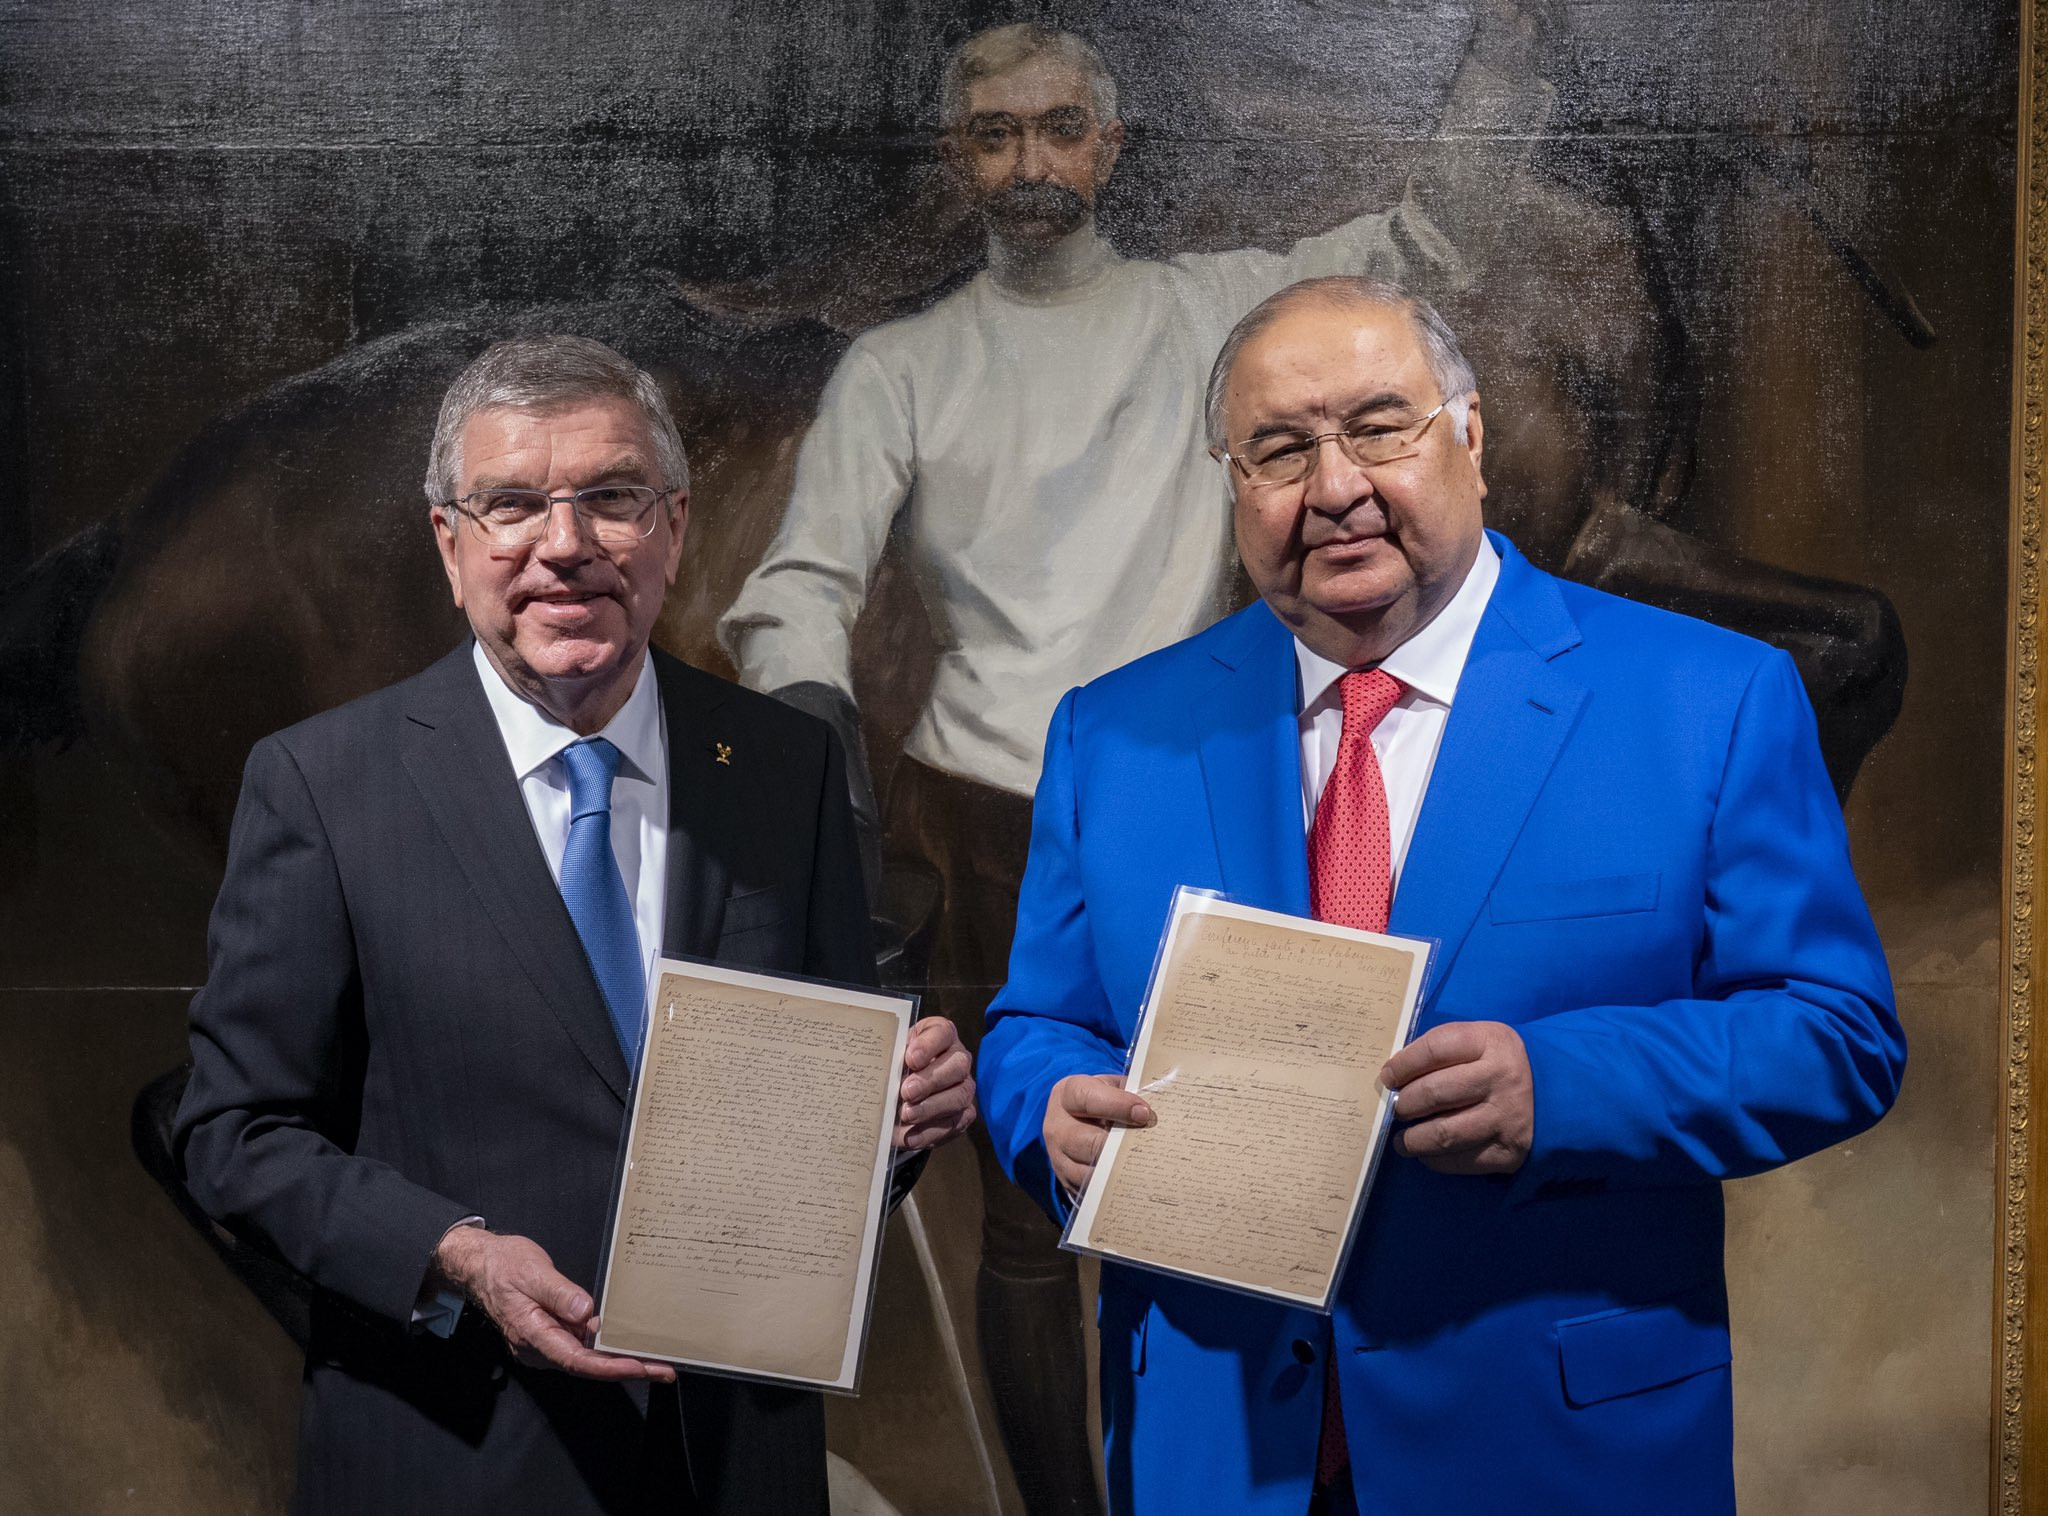 International Olympic Committee President Thomas Bach, left, received the manuscript from Alisher Usmanov in 2020 ©IOC